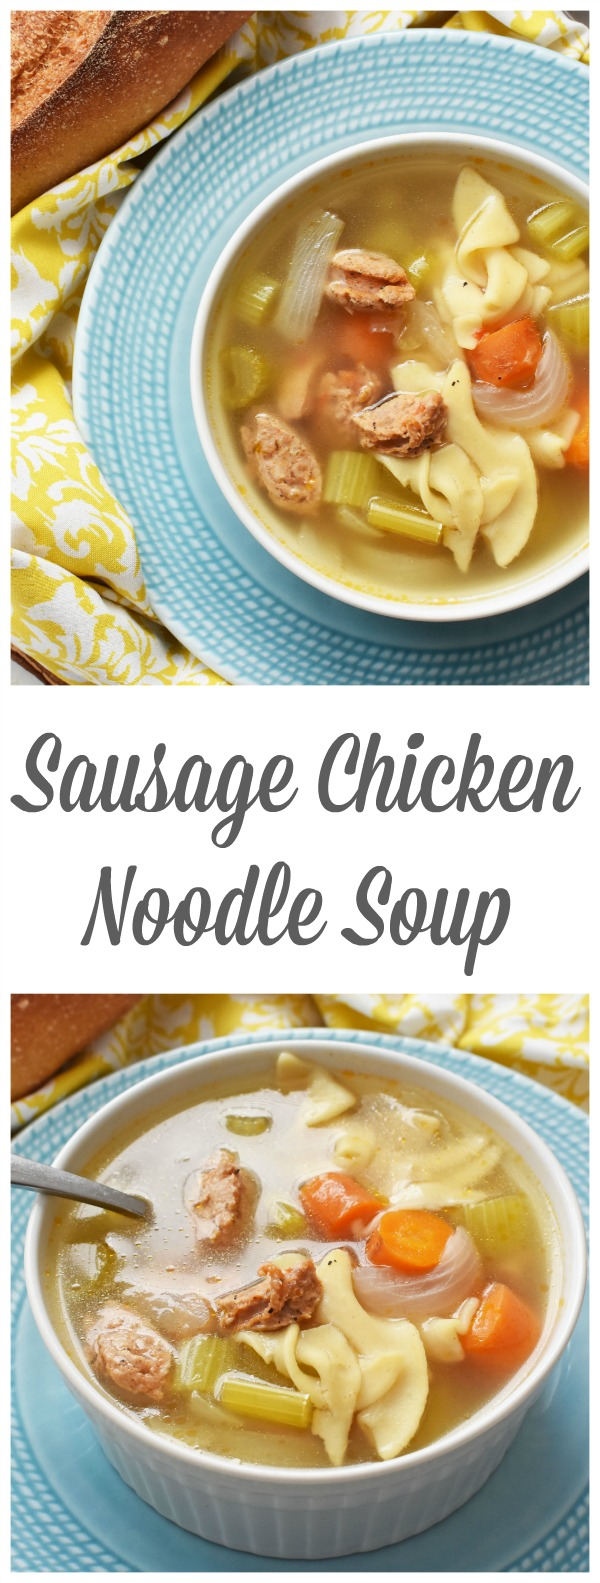 Chicken Noodle Sausage Soup- A spin on a classic. This chicken sausage soup is quicker & much less of a hassle than using raw chicken. Taste is amazing too